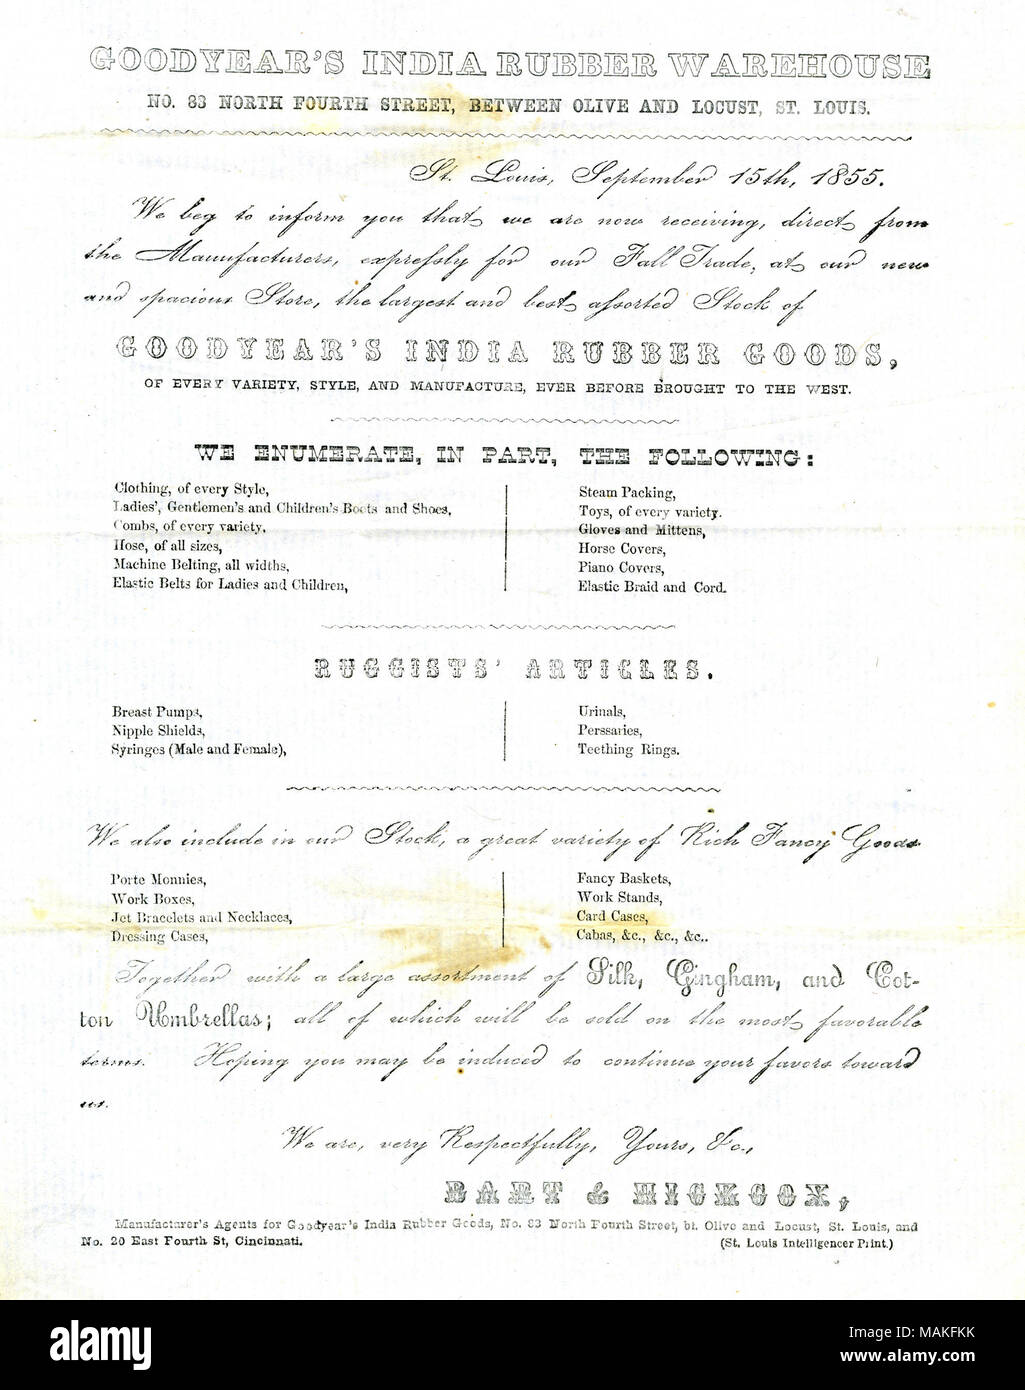 India Archives Stock Photos Images Alamy Ner V Ori Circular Of Bart Hickcox Manufacturers Agents For Goodyears Rubber Goods 83 North